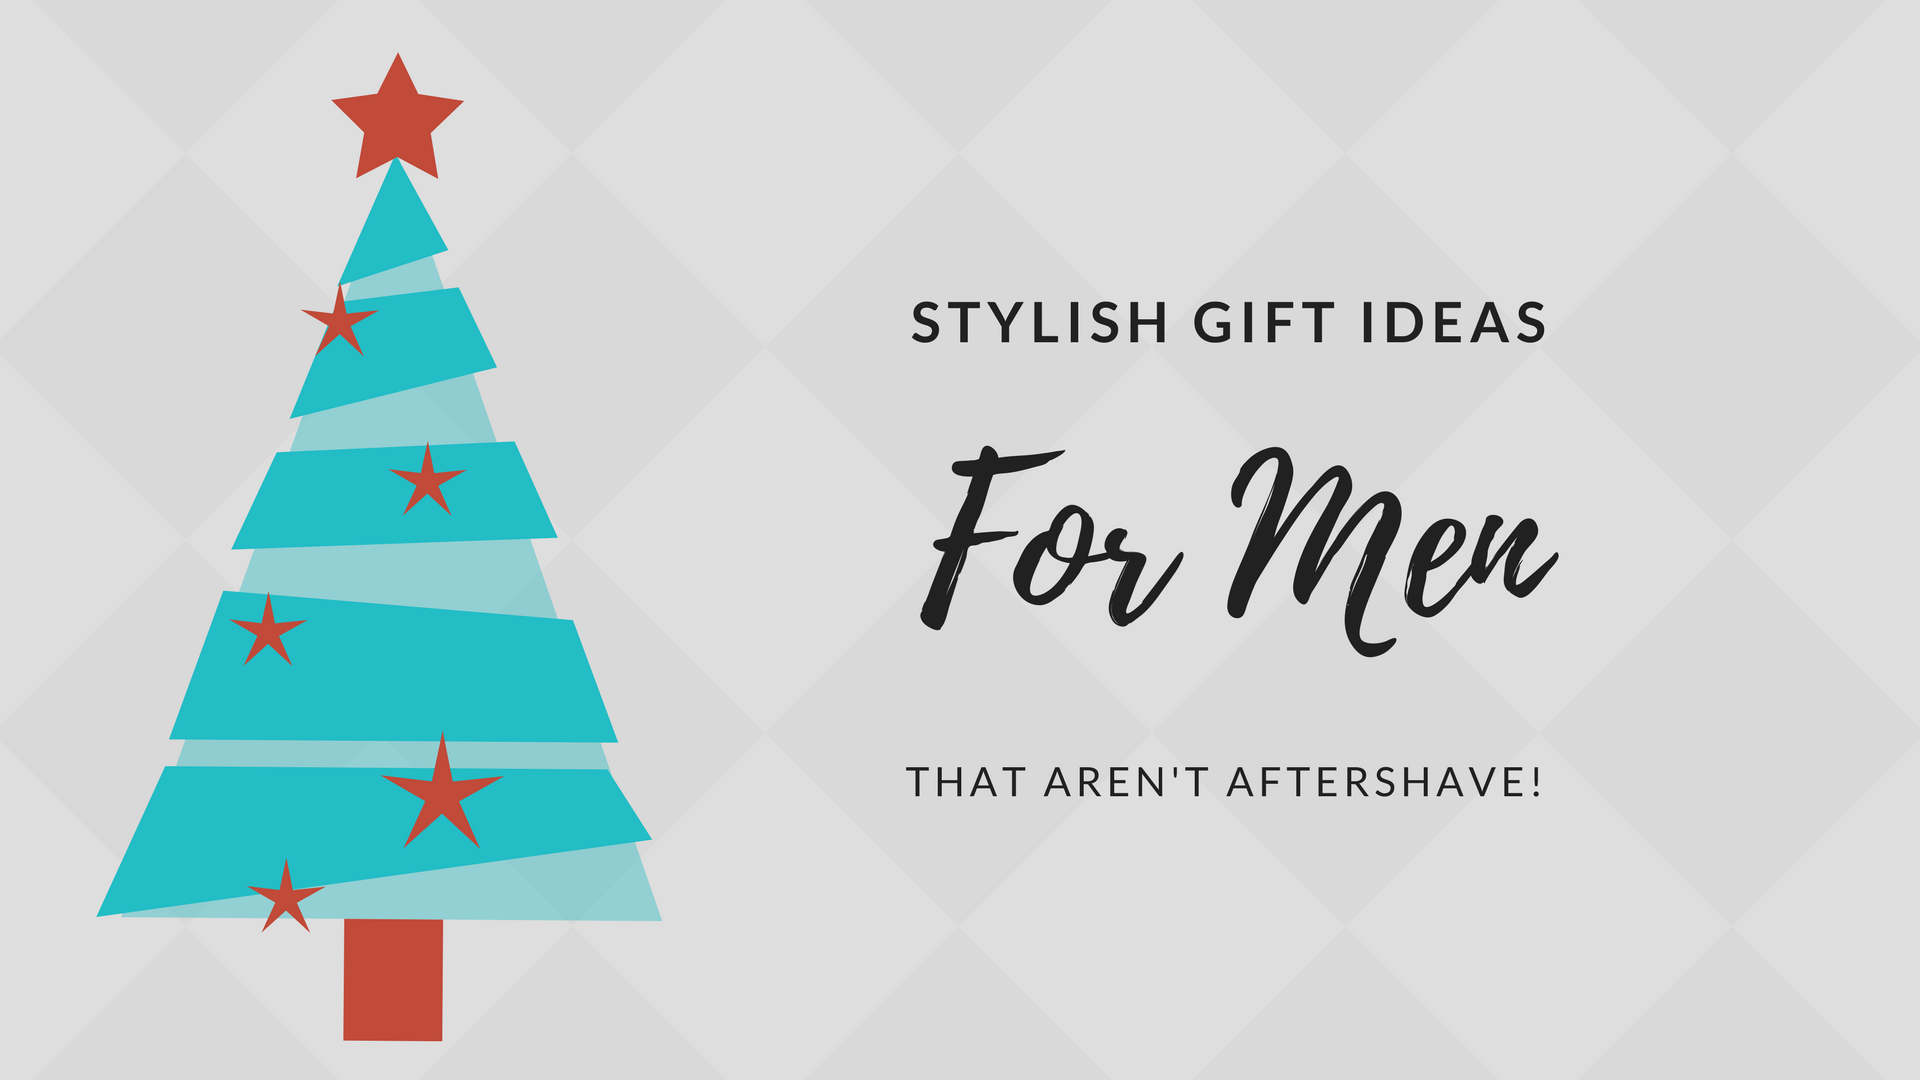 Hard-Working Women Stylish Gift Ideas For Men That Aren't Aftershave Gift Guide For Him 2017